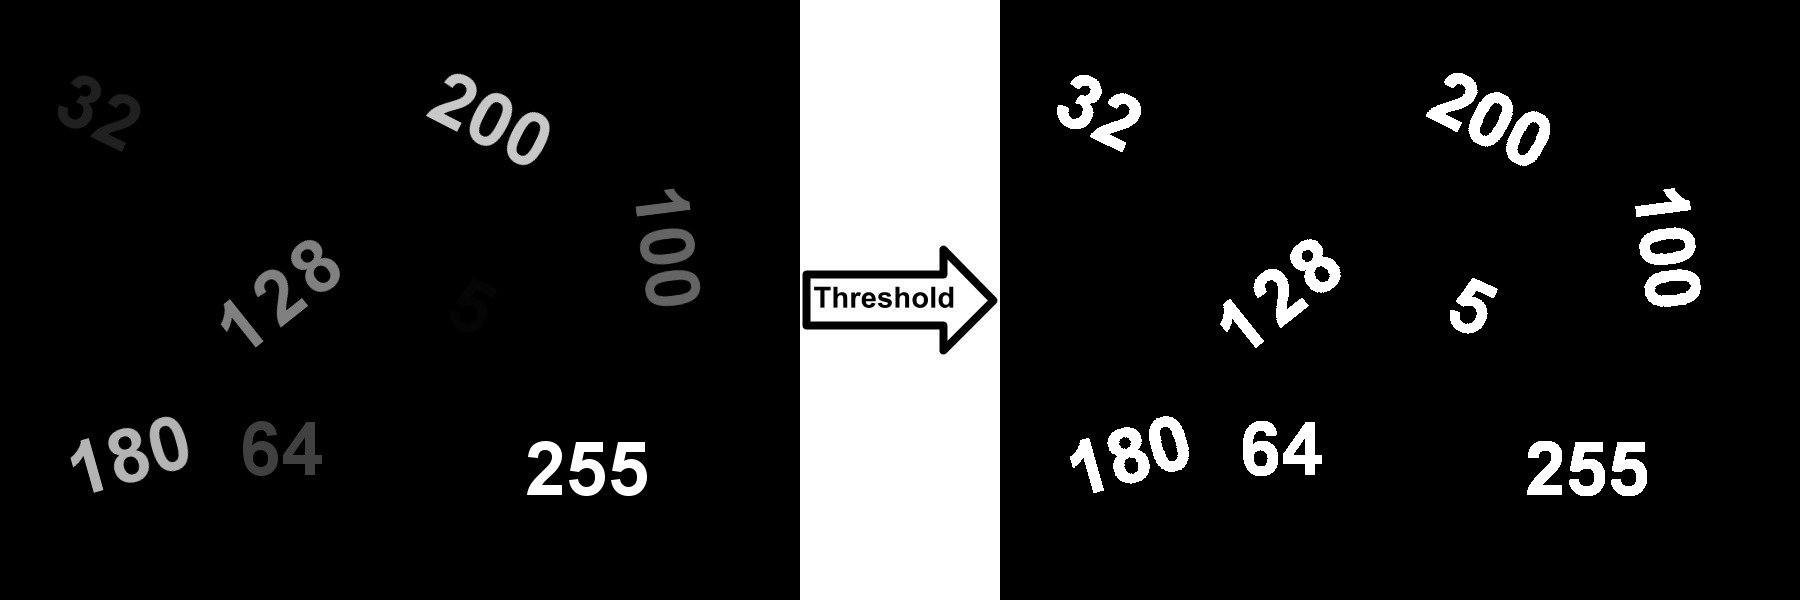 OpenCV Threshold Tutorial